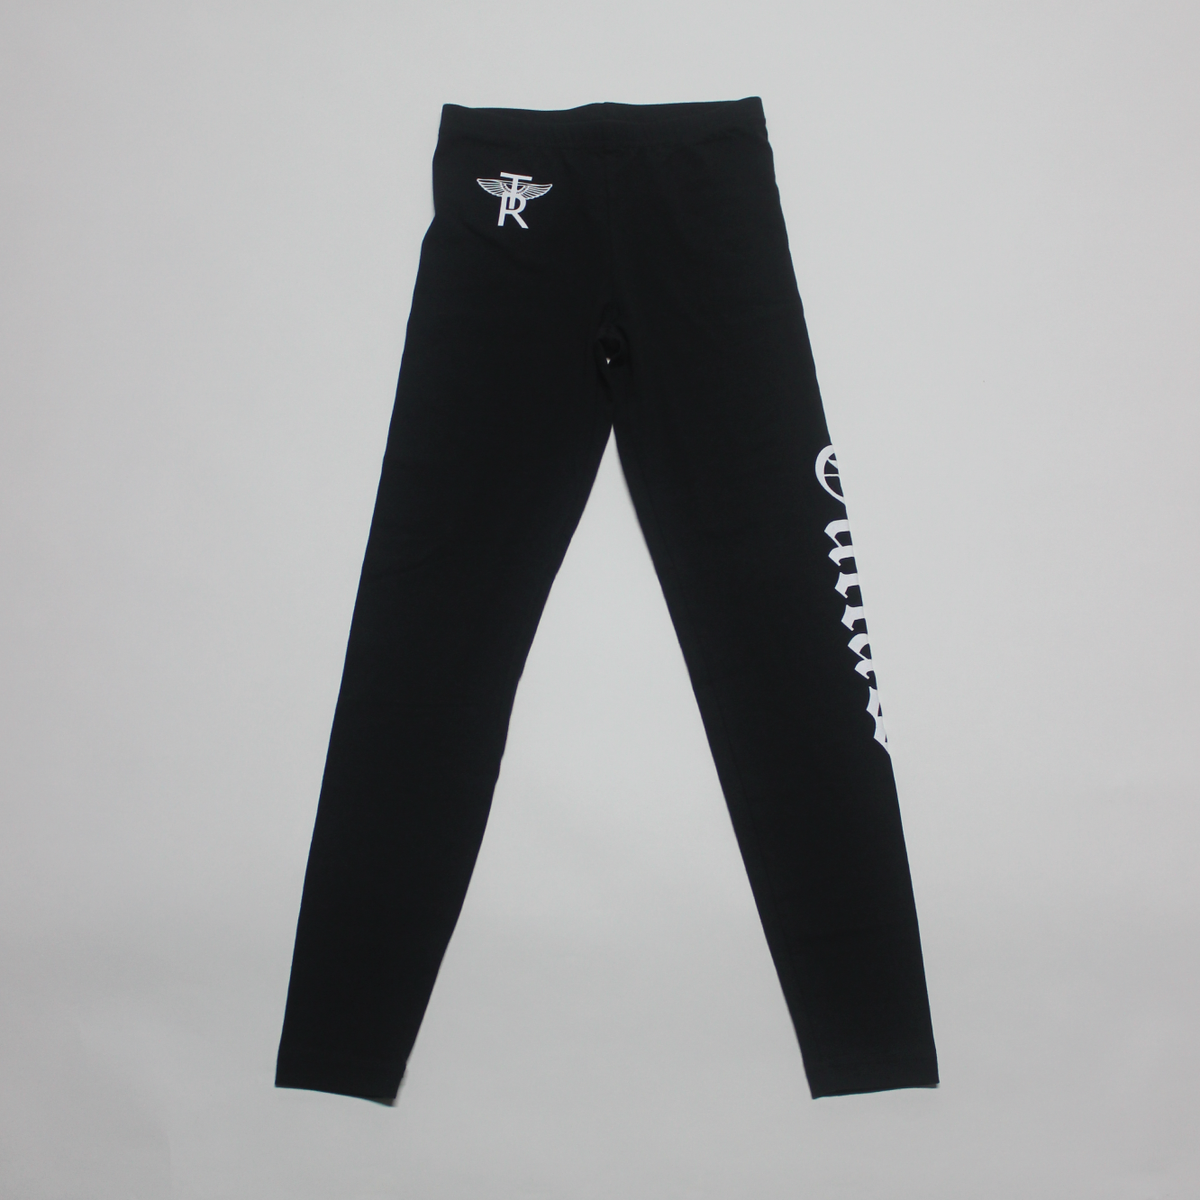 Image of OUTLAW Leggings (Black)